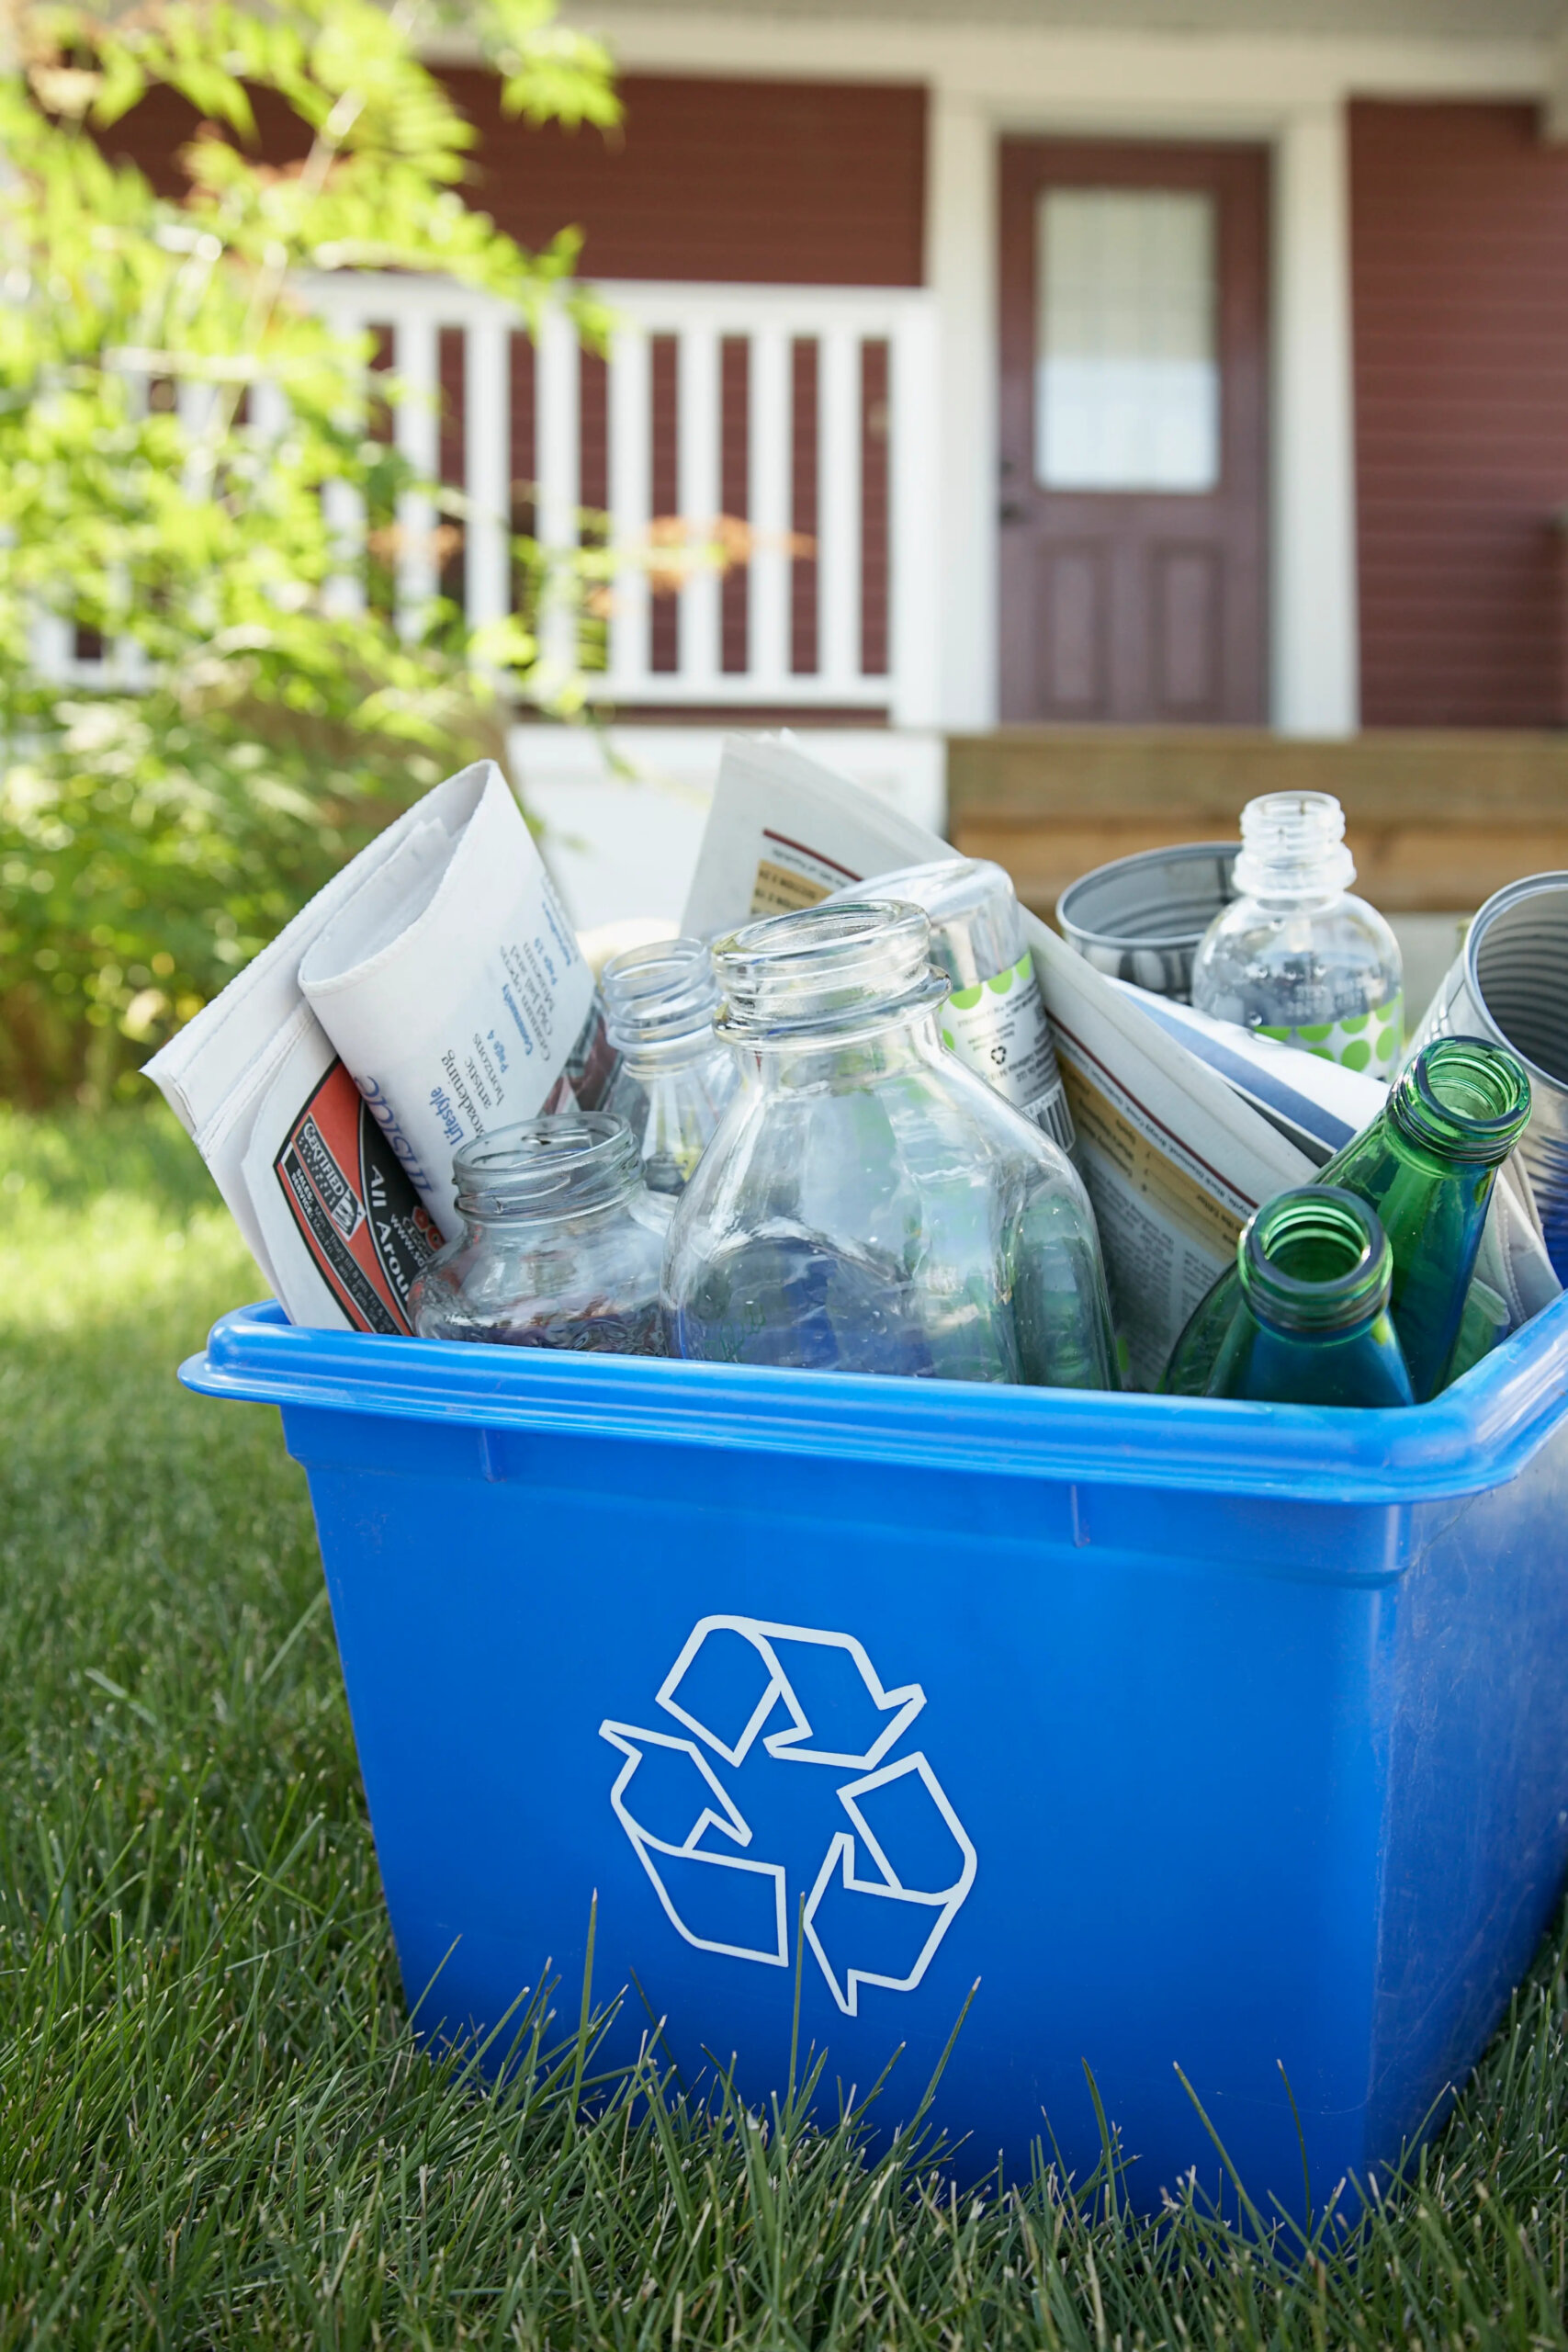 8 Ways To Save Money When Disposing Of Household Waste